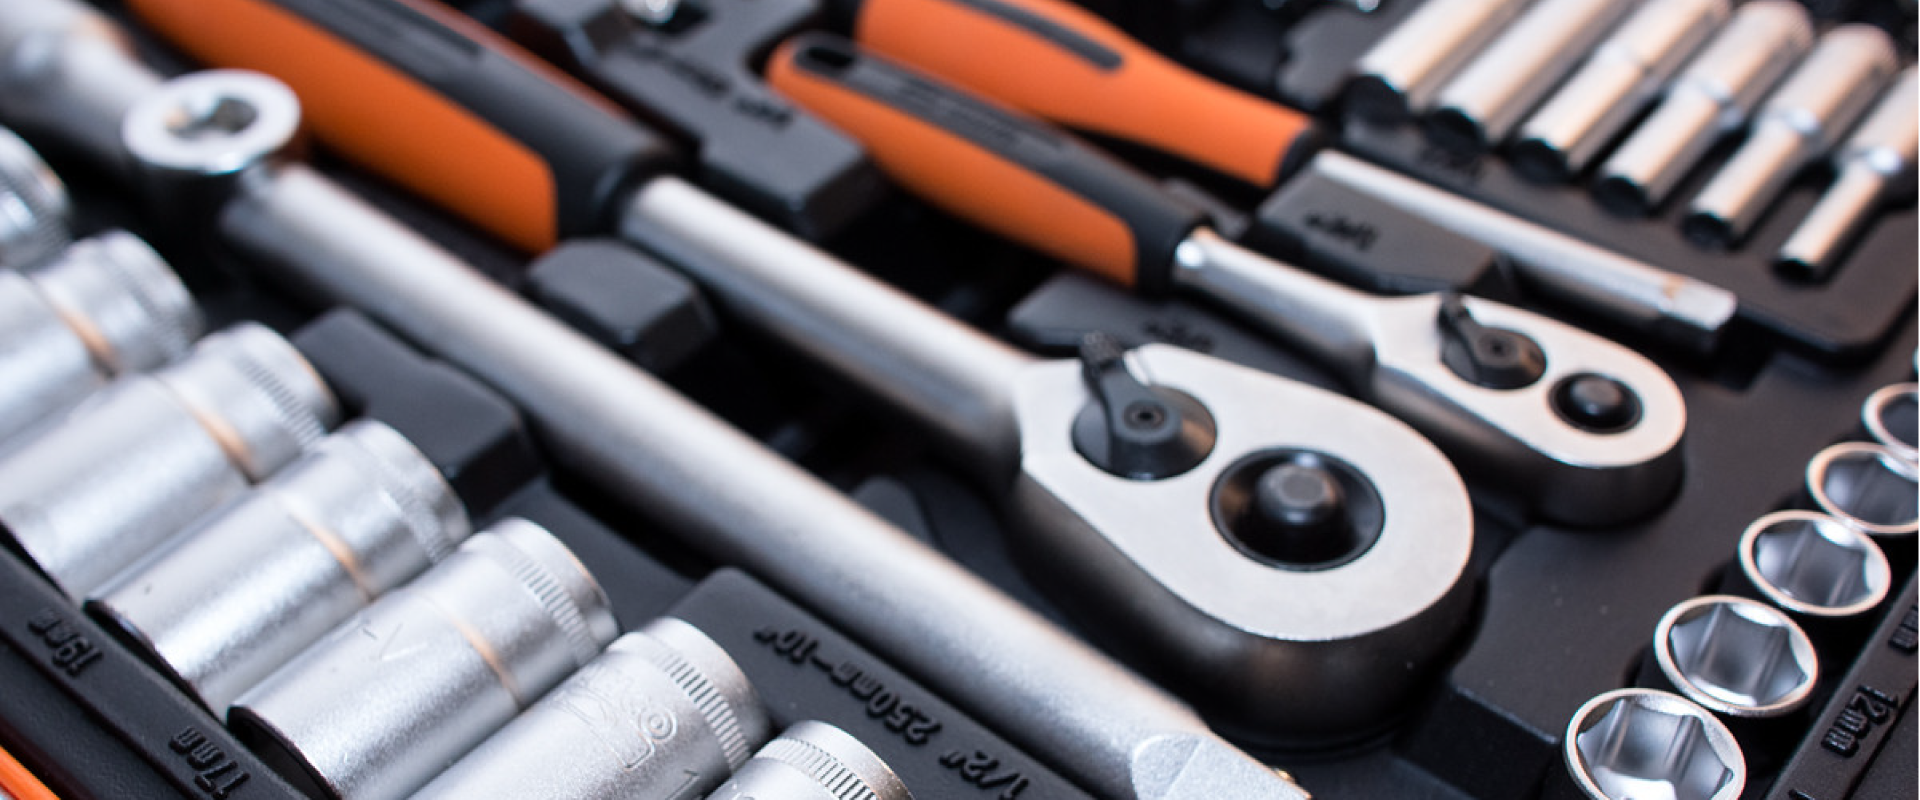 Repairable vehicles and used parts in Brentwood, Essex